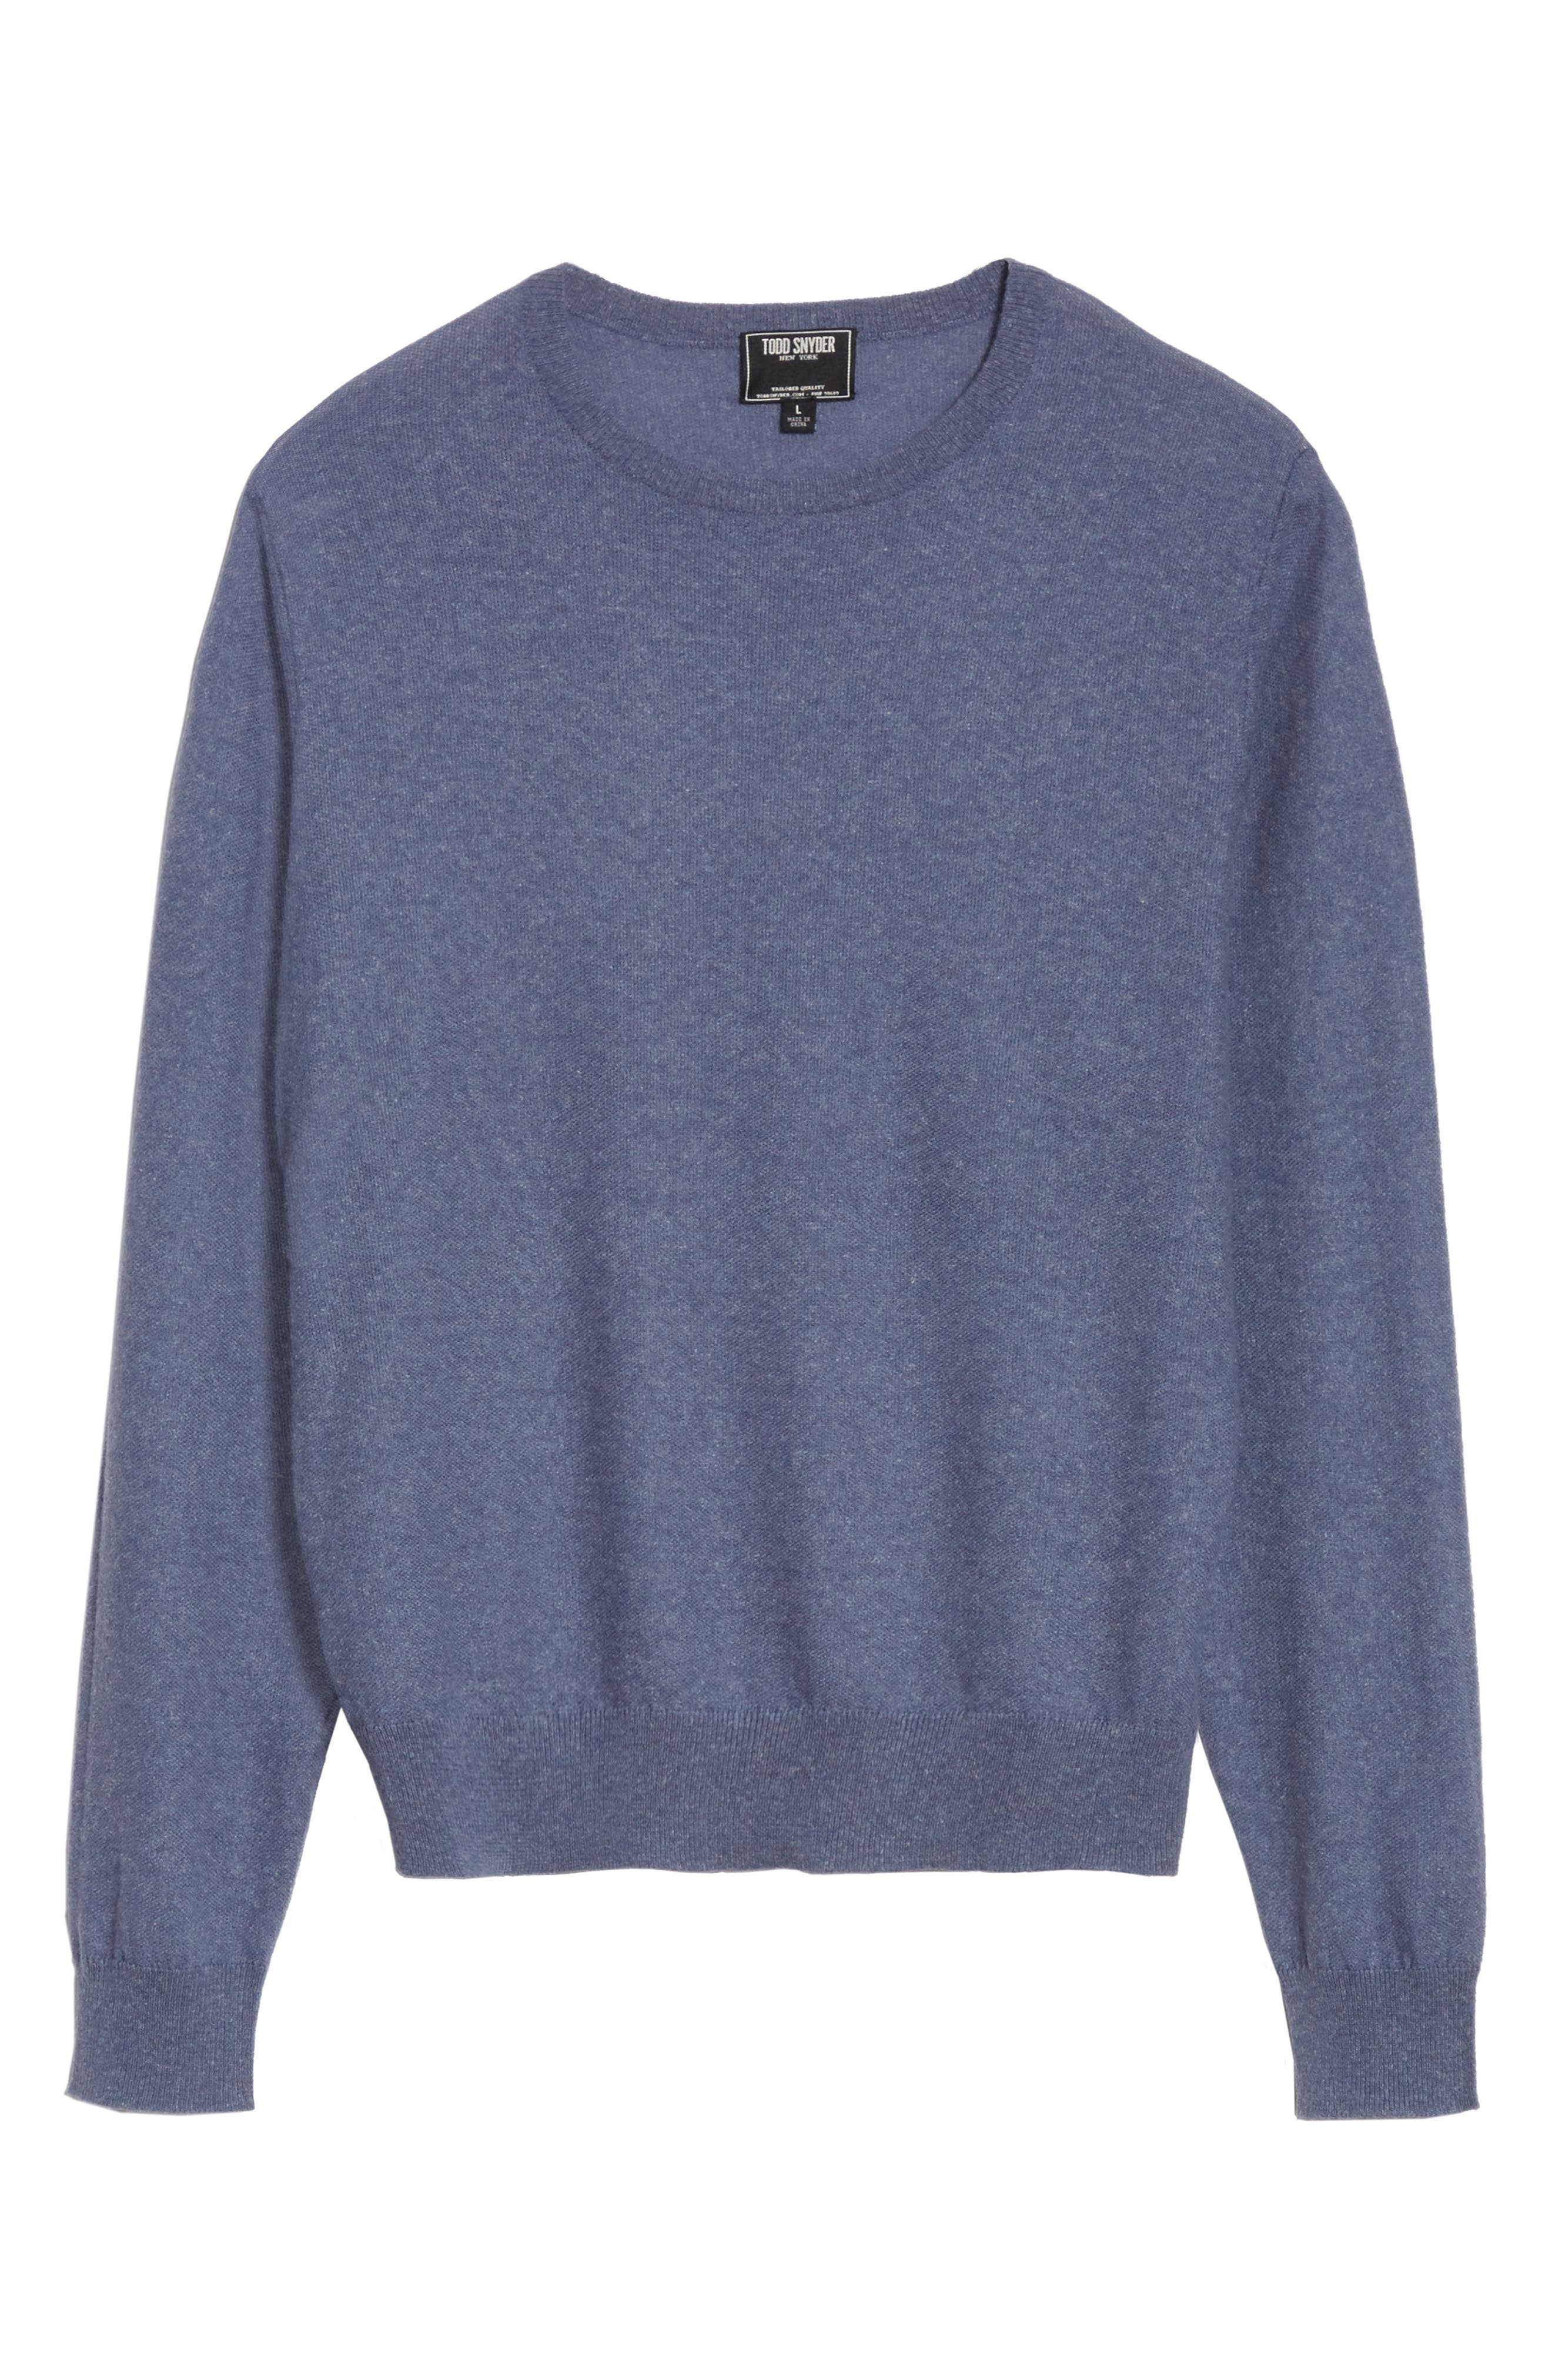 Cashmere & Linen Crewneck Sweater,                             Alternate thumbnail 6, color,                             475